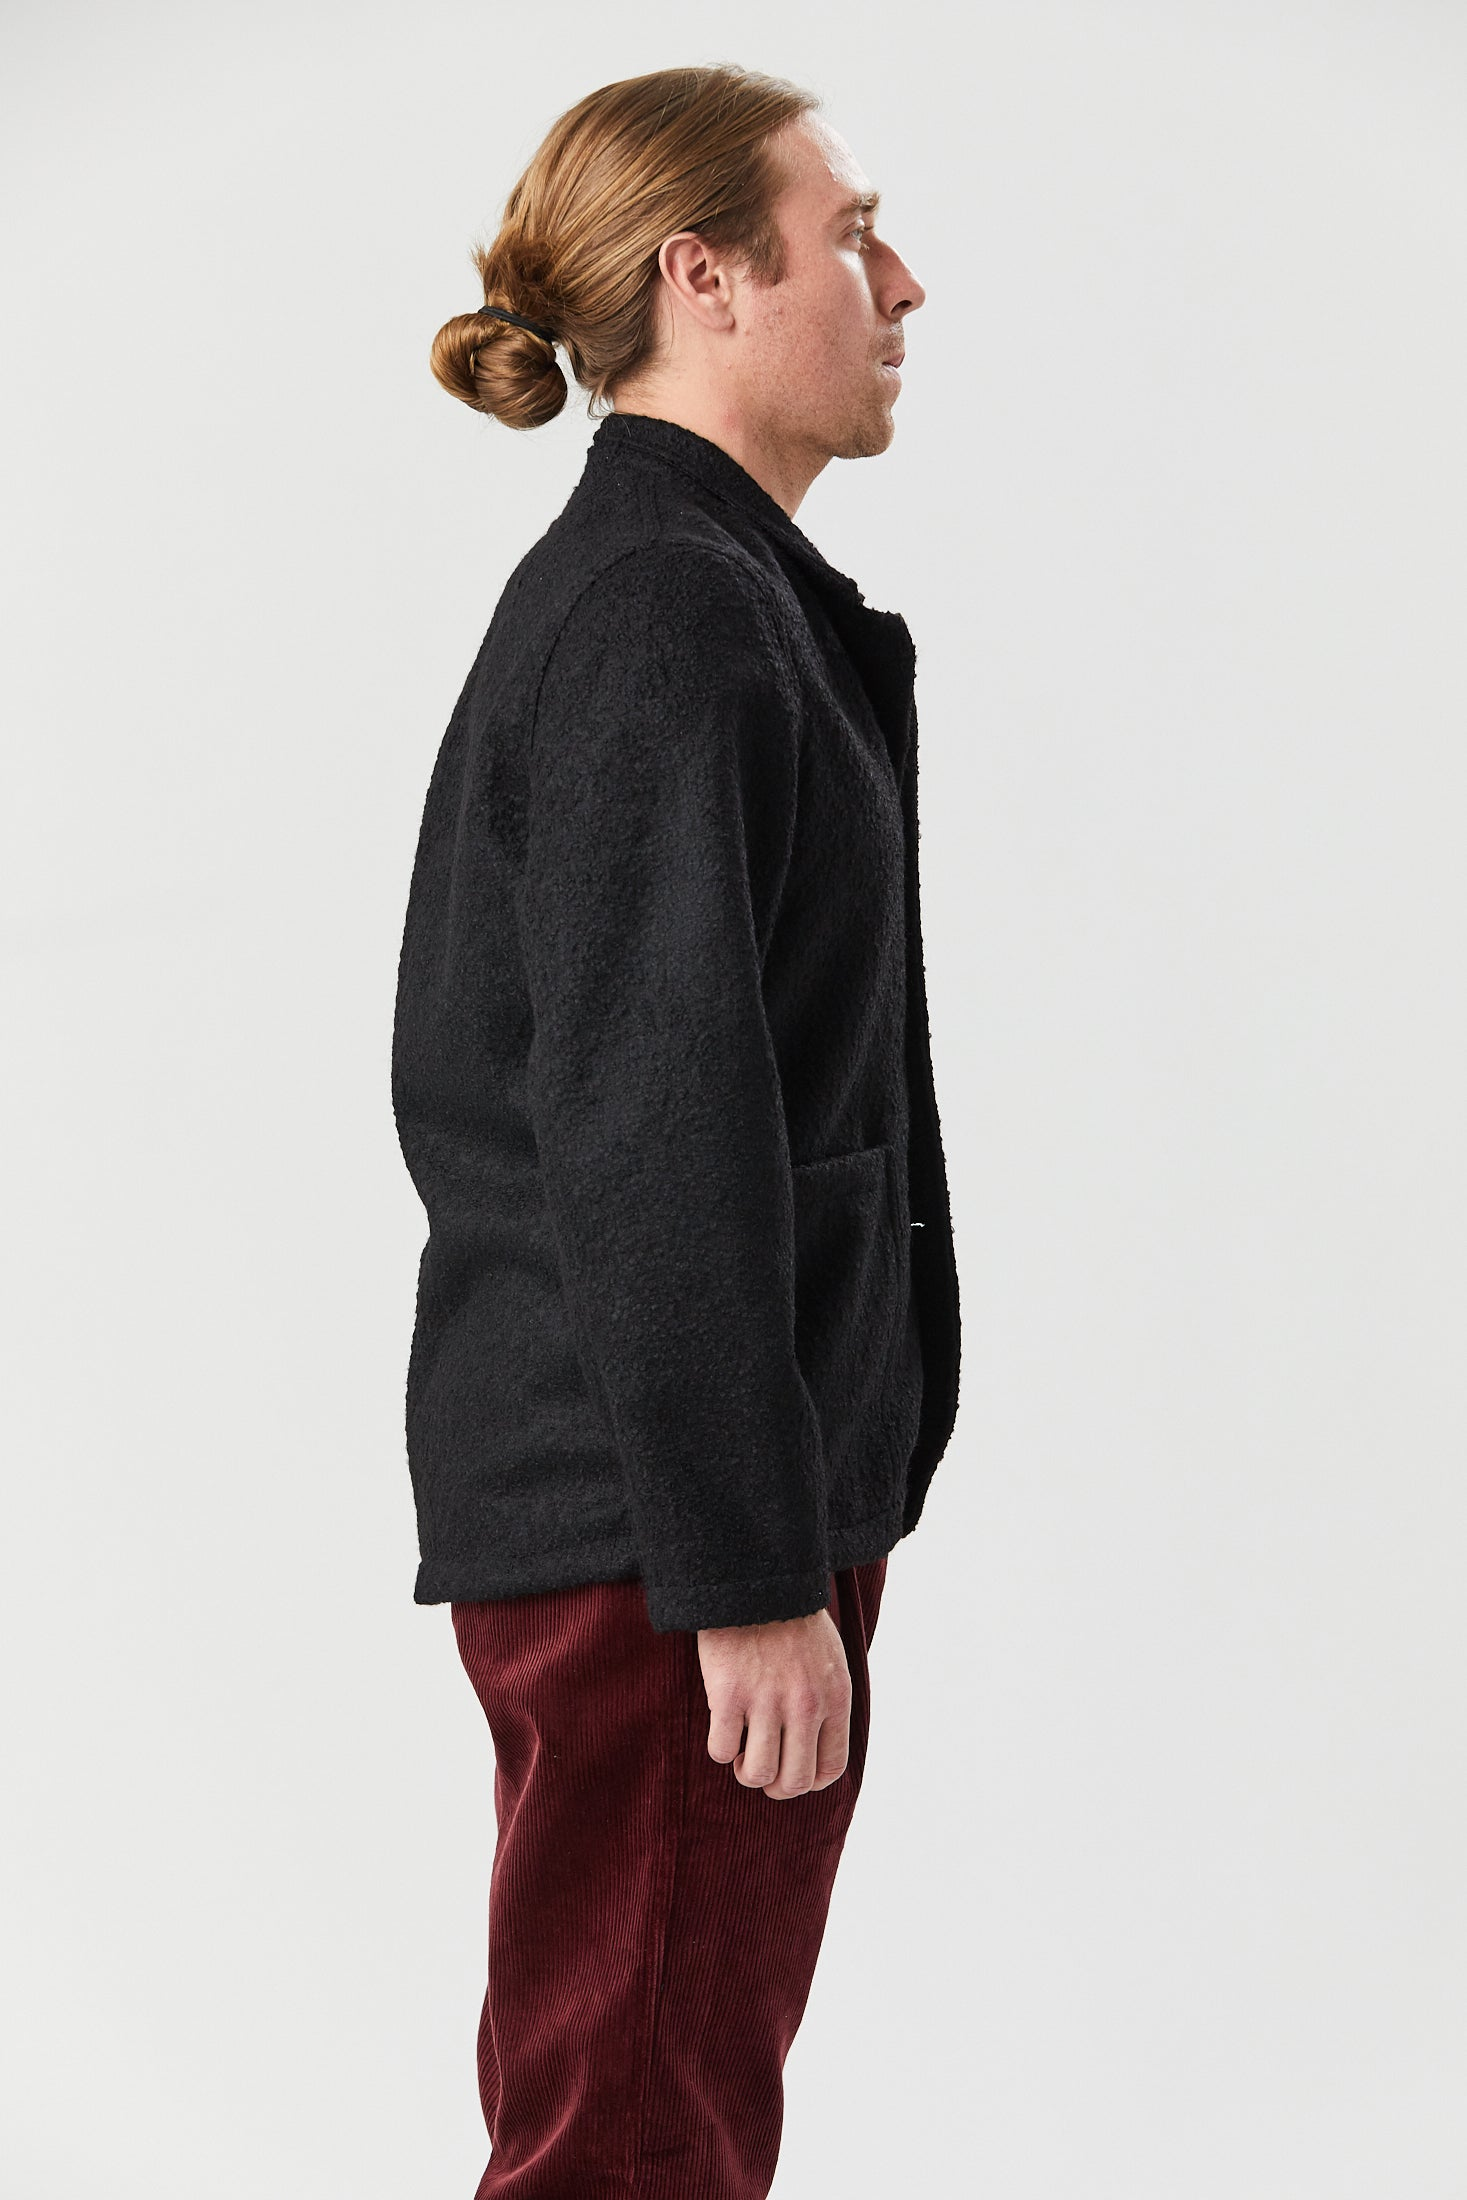 CASS JACKET IN BLACK BOILED WOOL - Fortune Goods